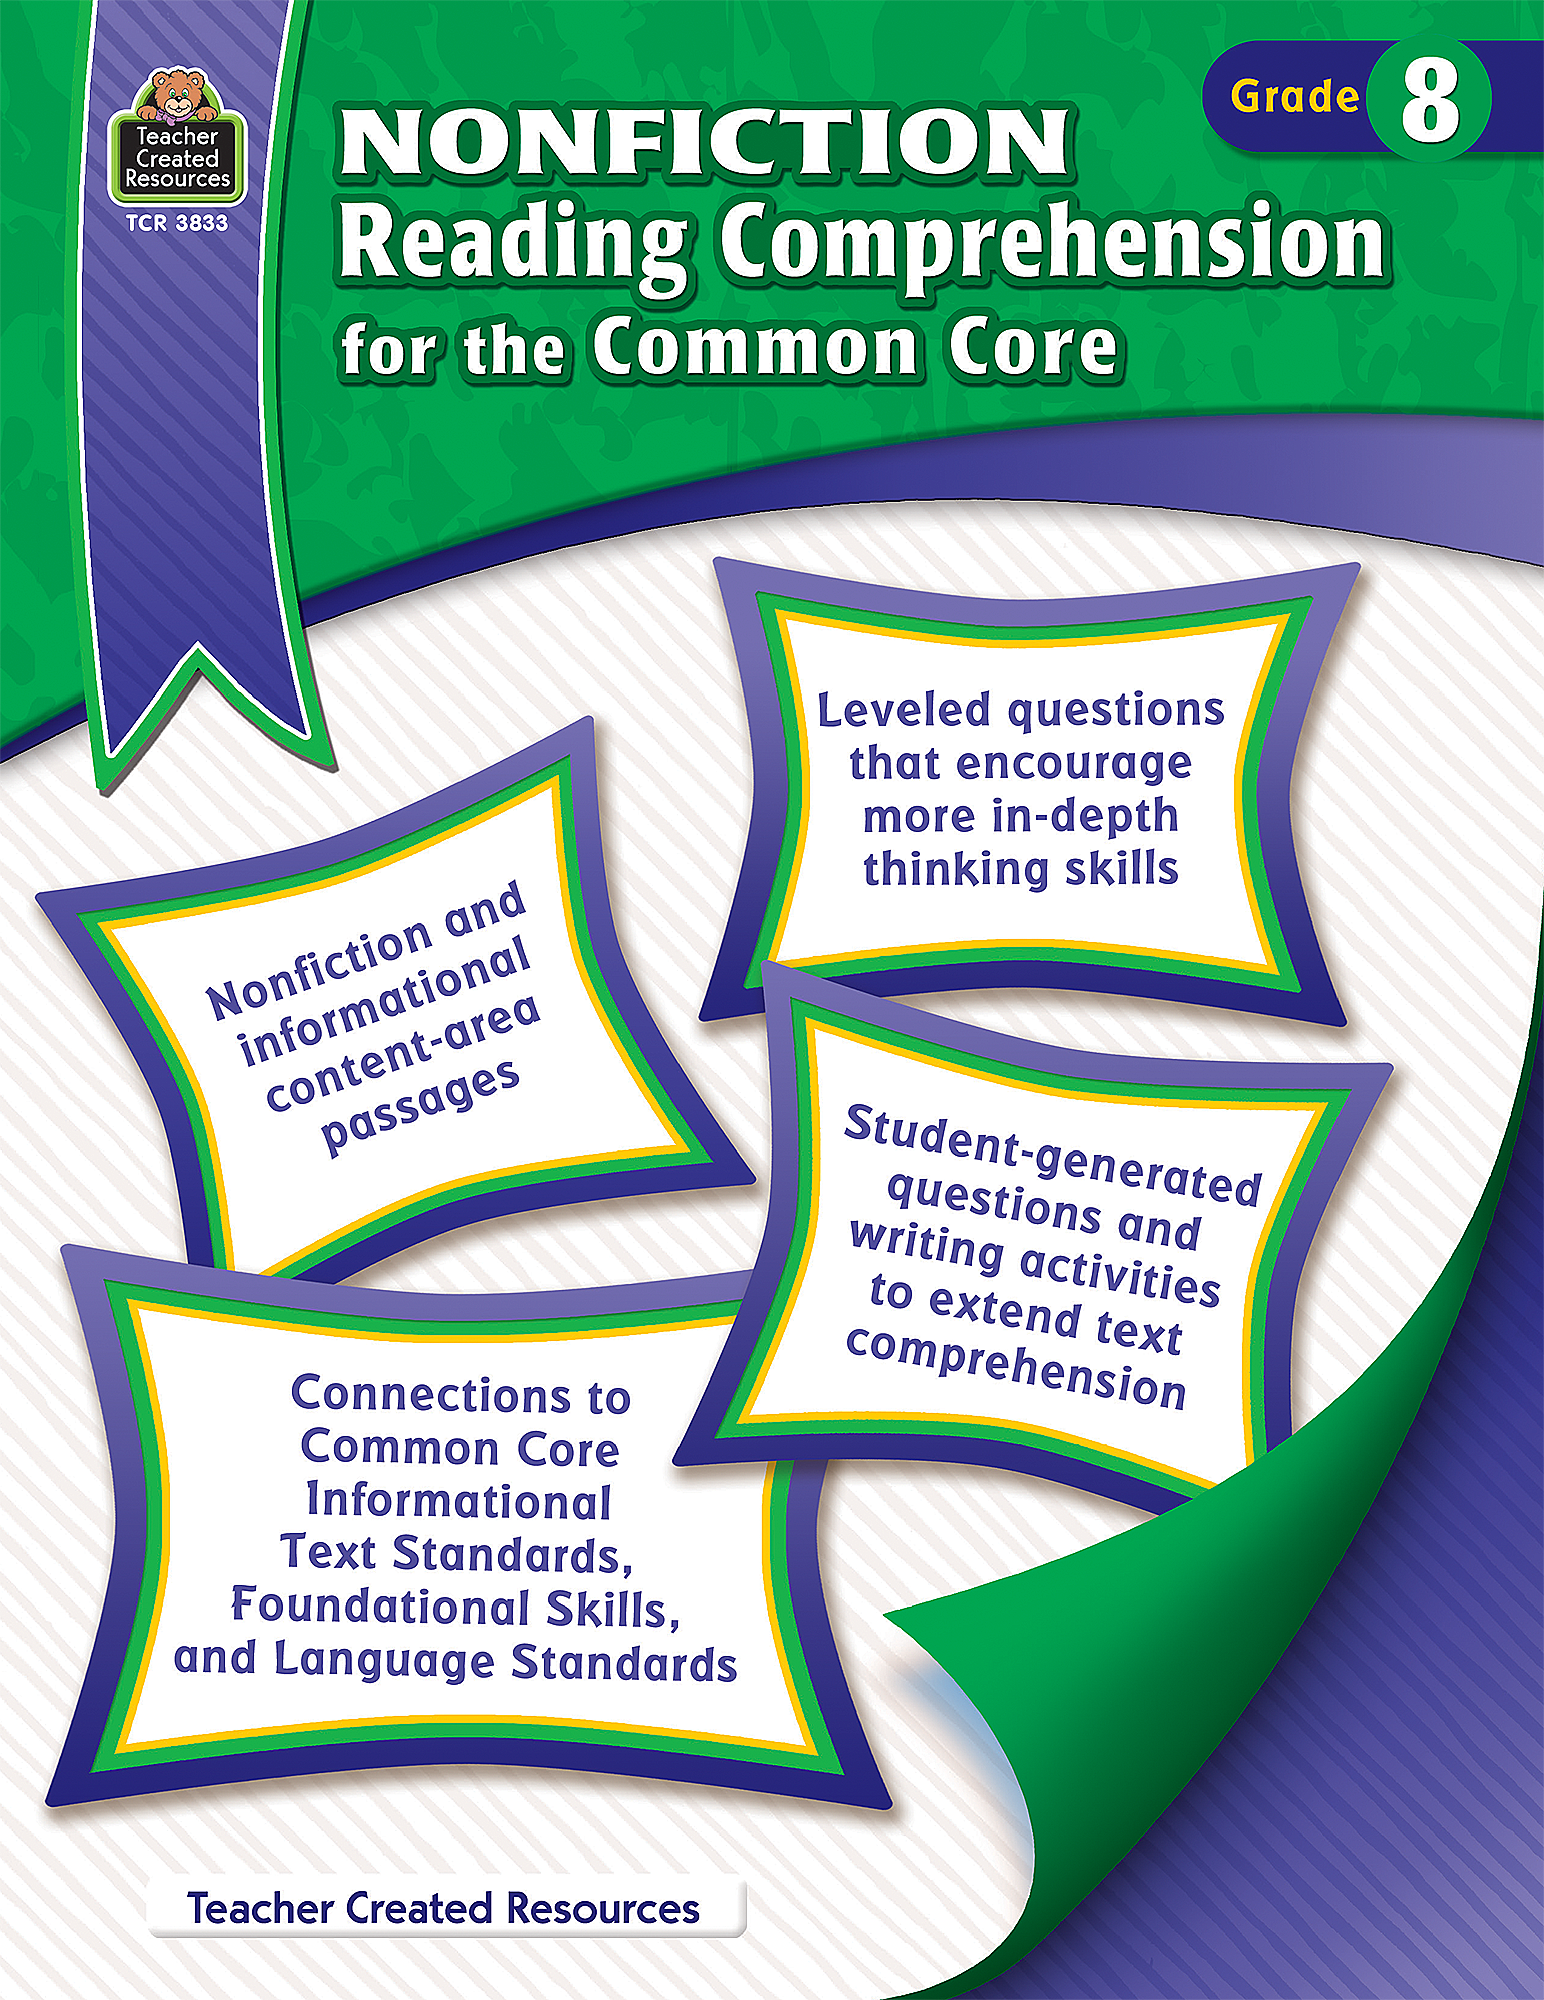 worksheet Common Core Reading Comprehension Worksheets nonfiction reading comprehension for the common core grade 8 tcr3833 teacher created resources